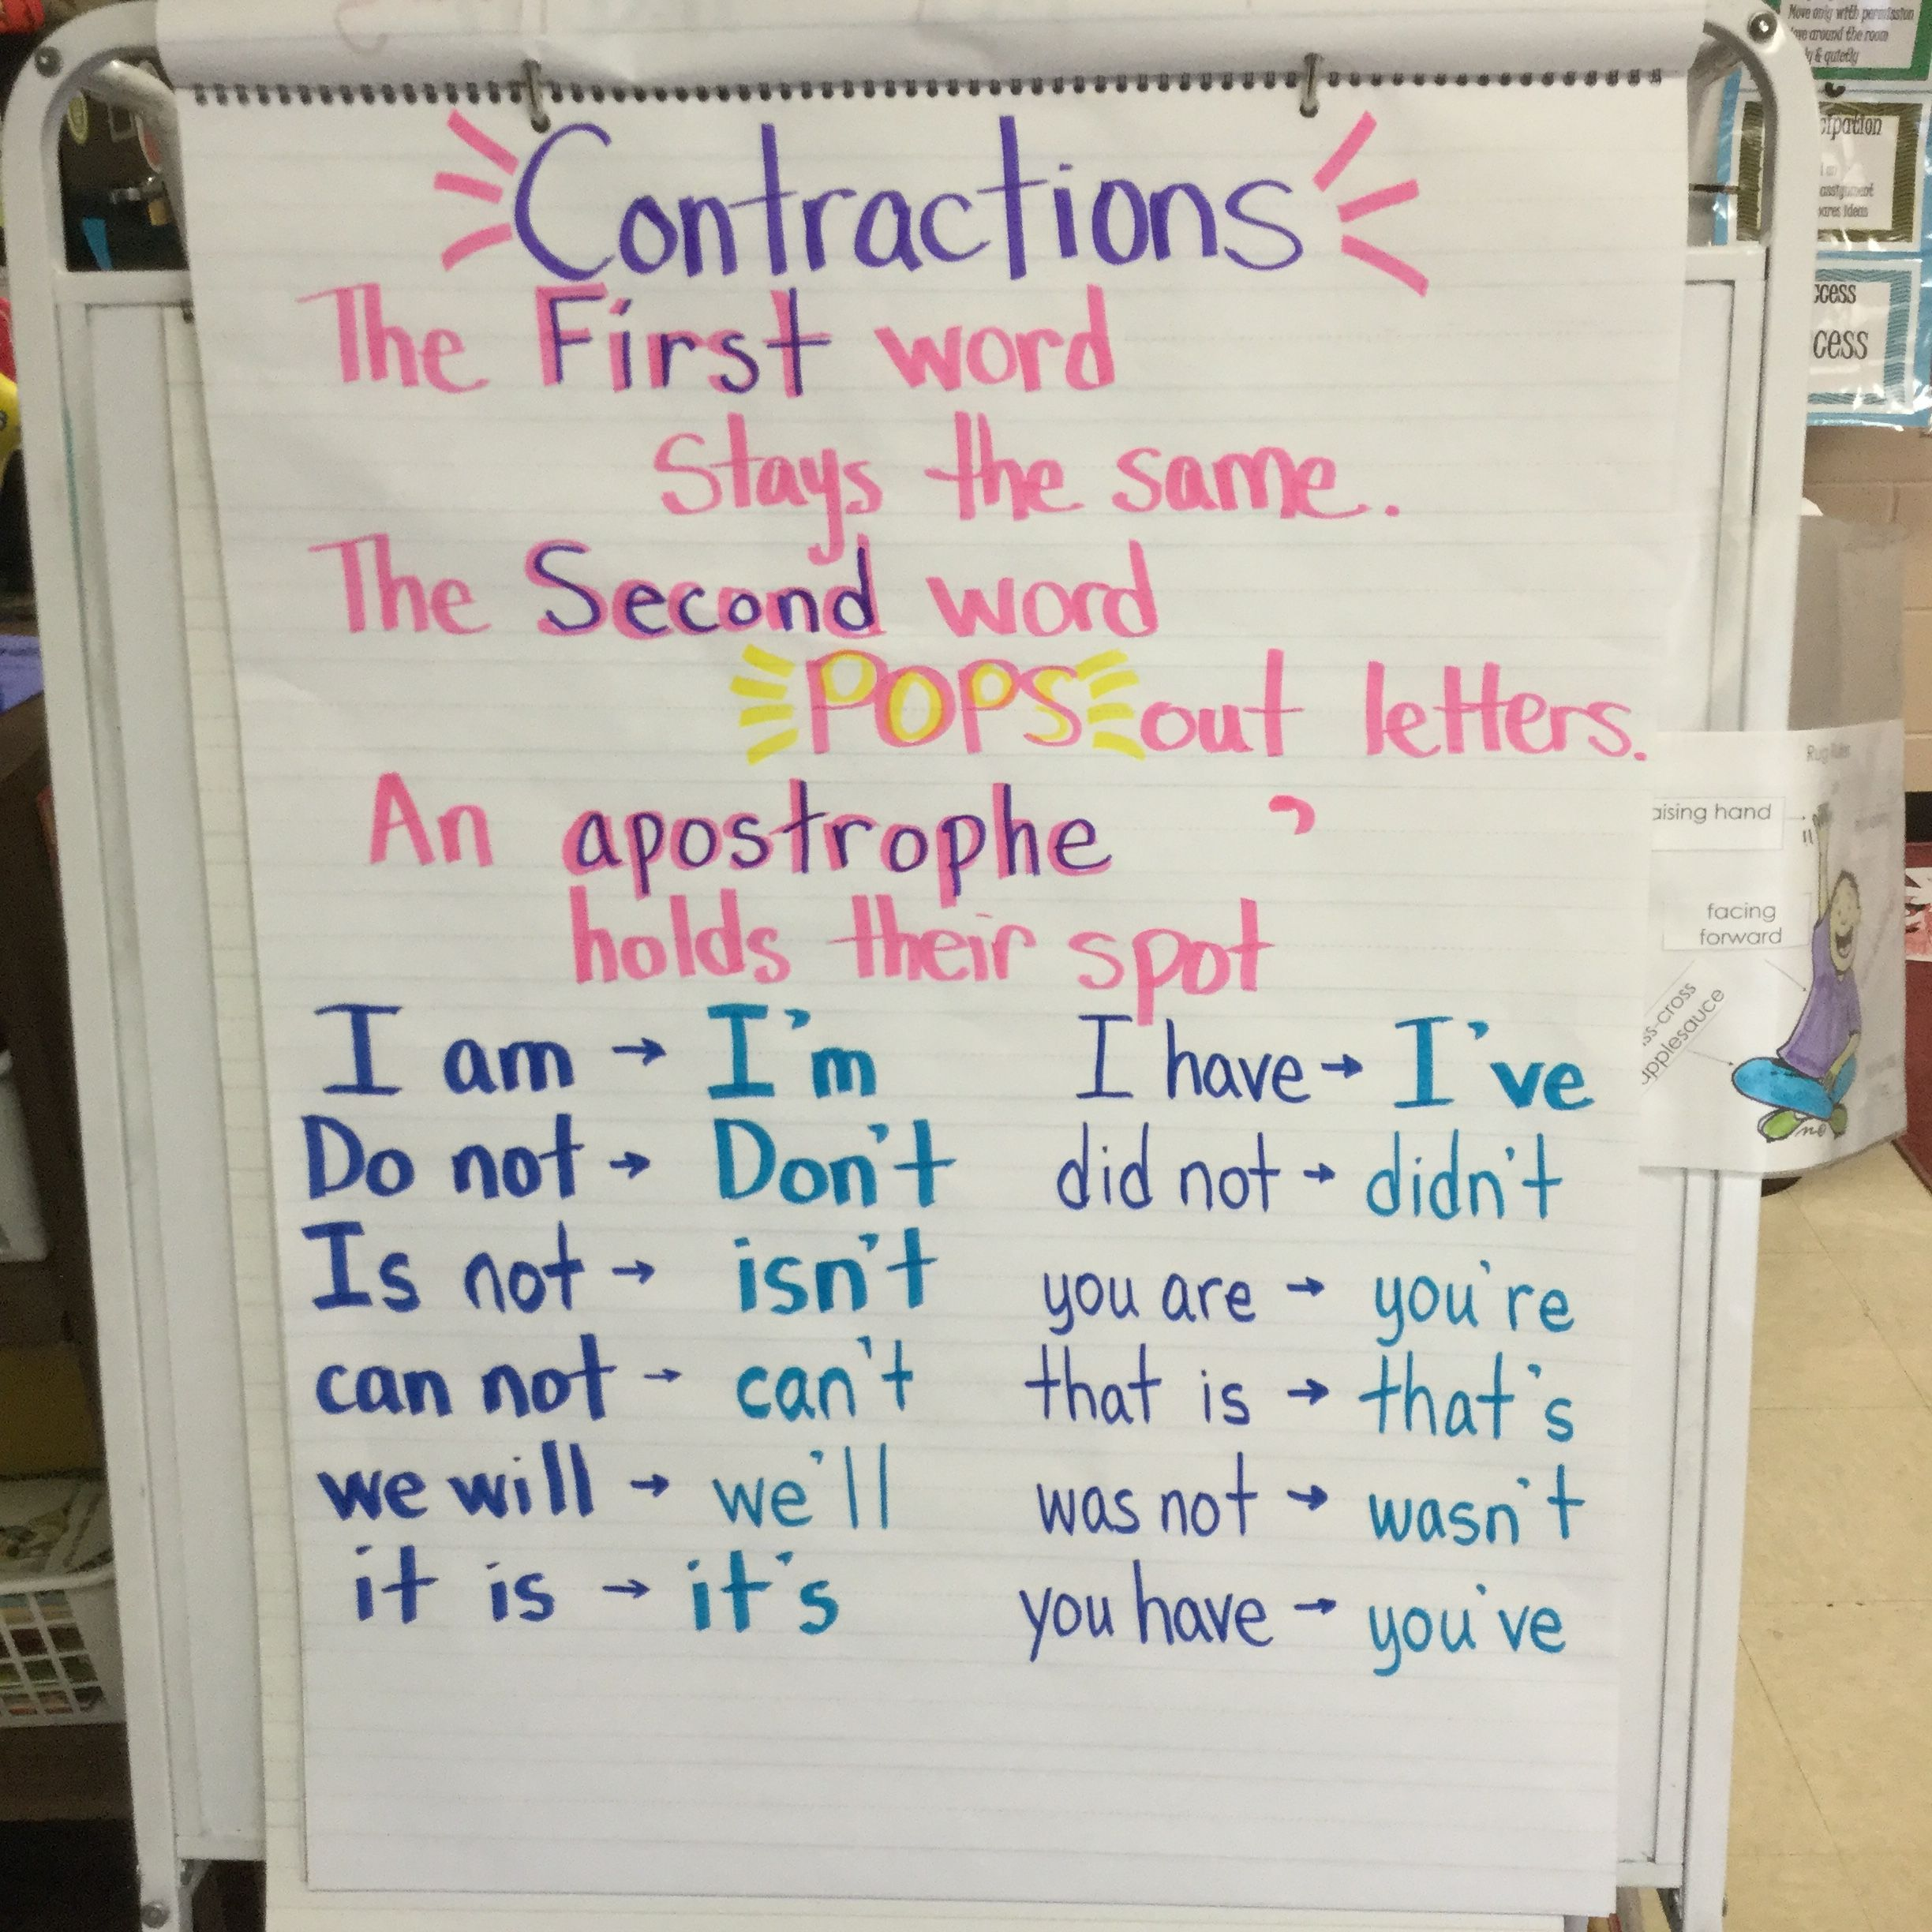 Contractions With The Rules